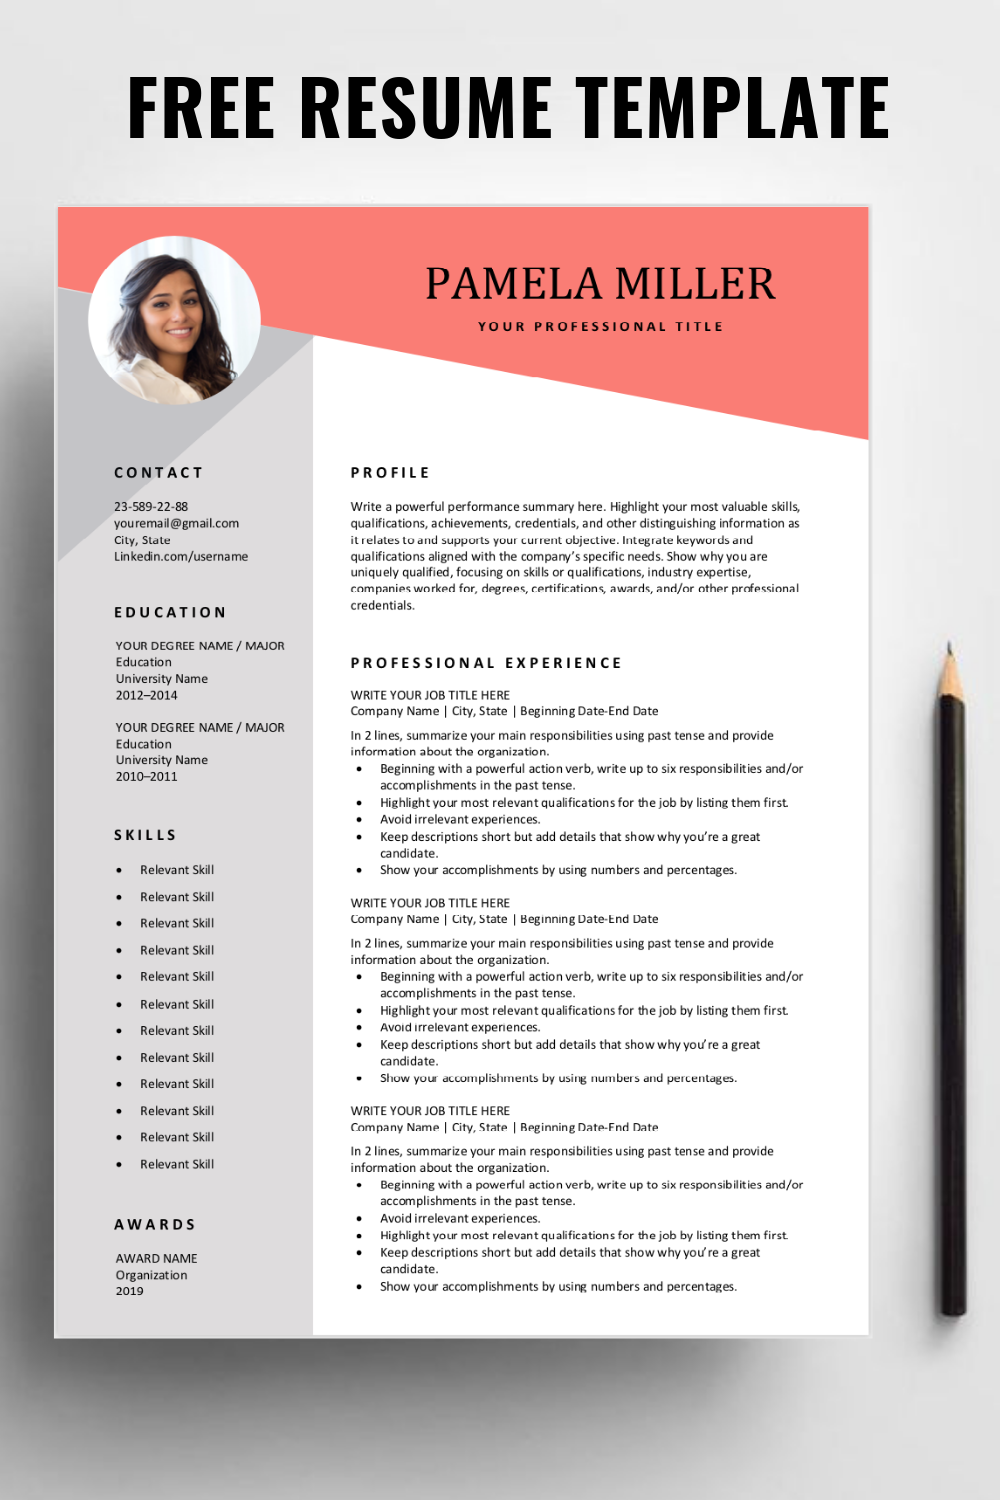 Free Resume Template Resume Template Ideas of Resume